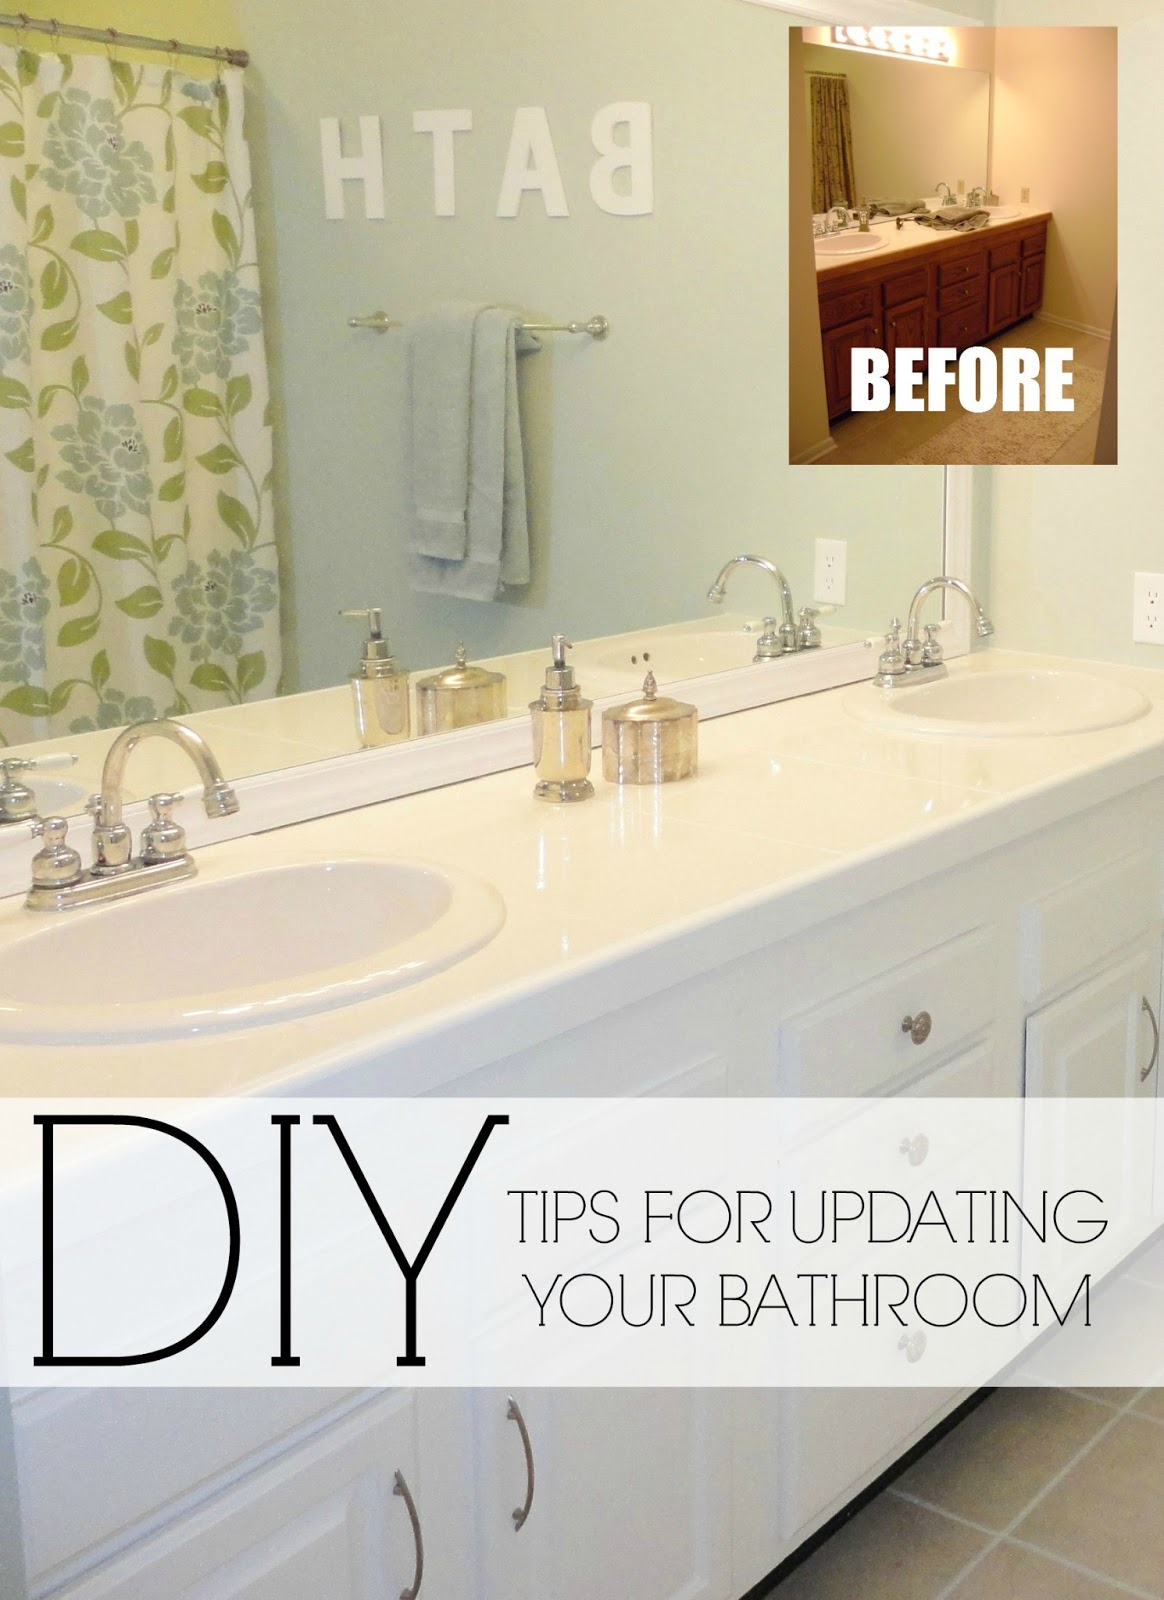 Home design ideas bathroom decorating ideas on a budget for Diy bathroom ideas on a budget